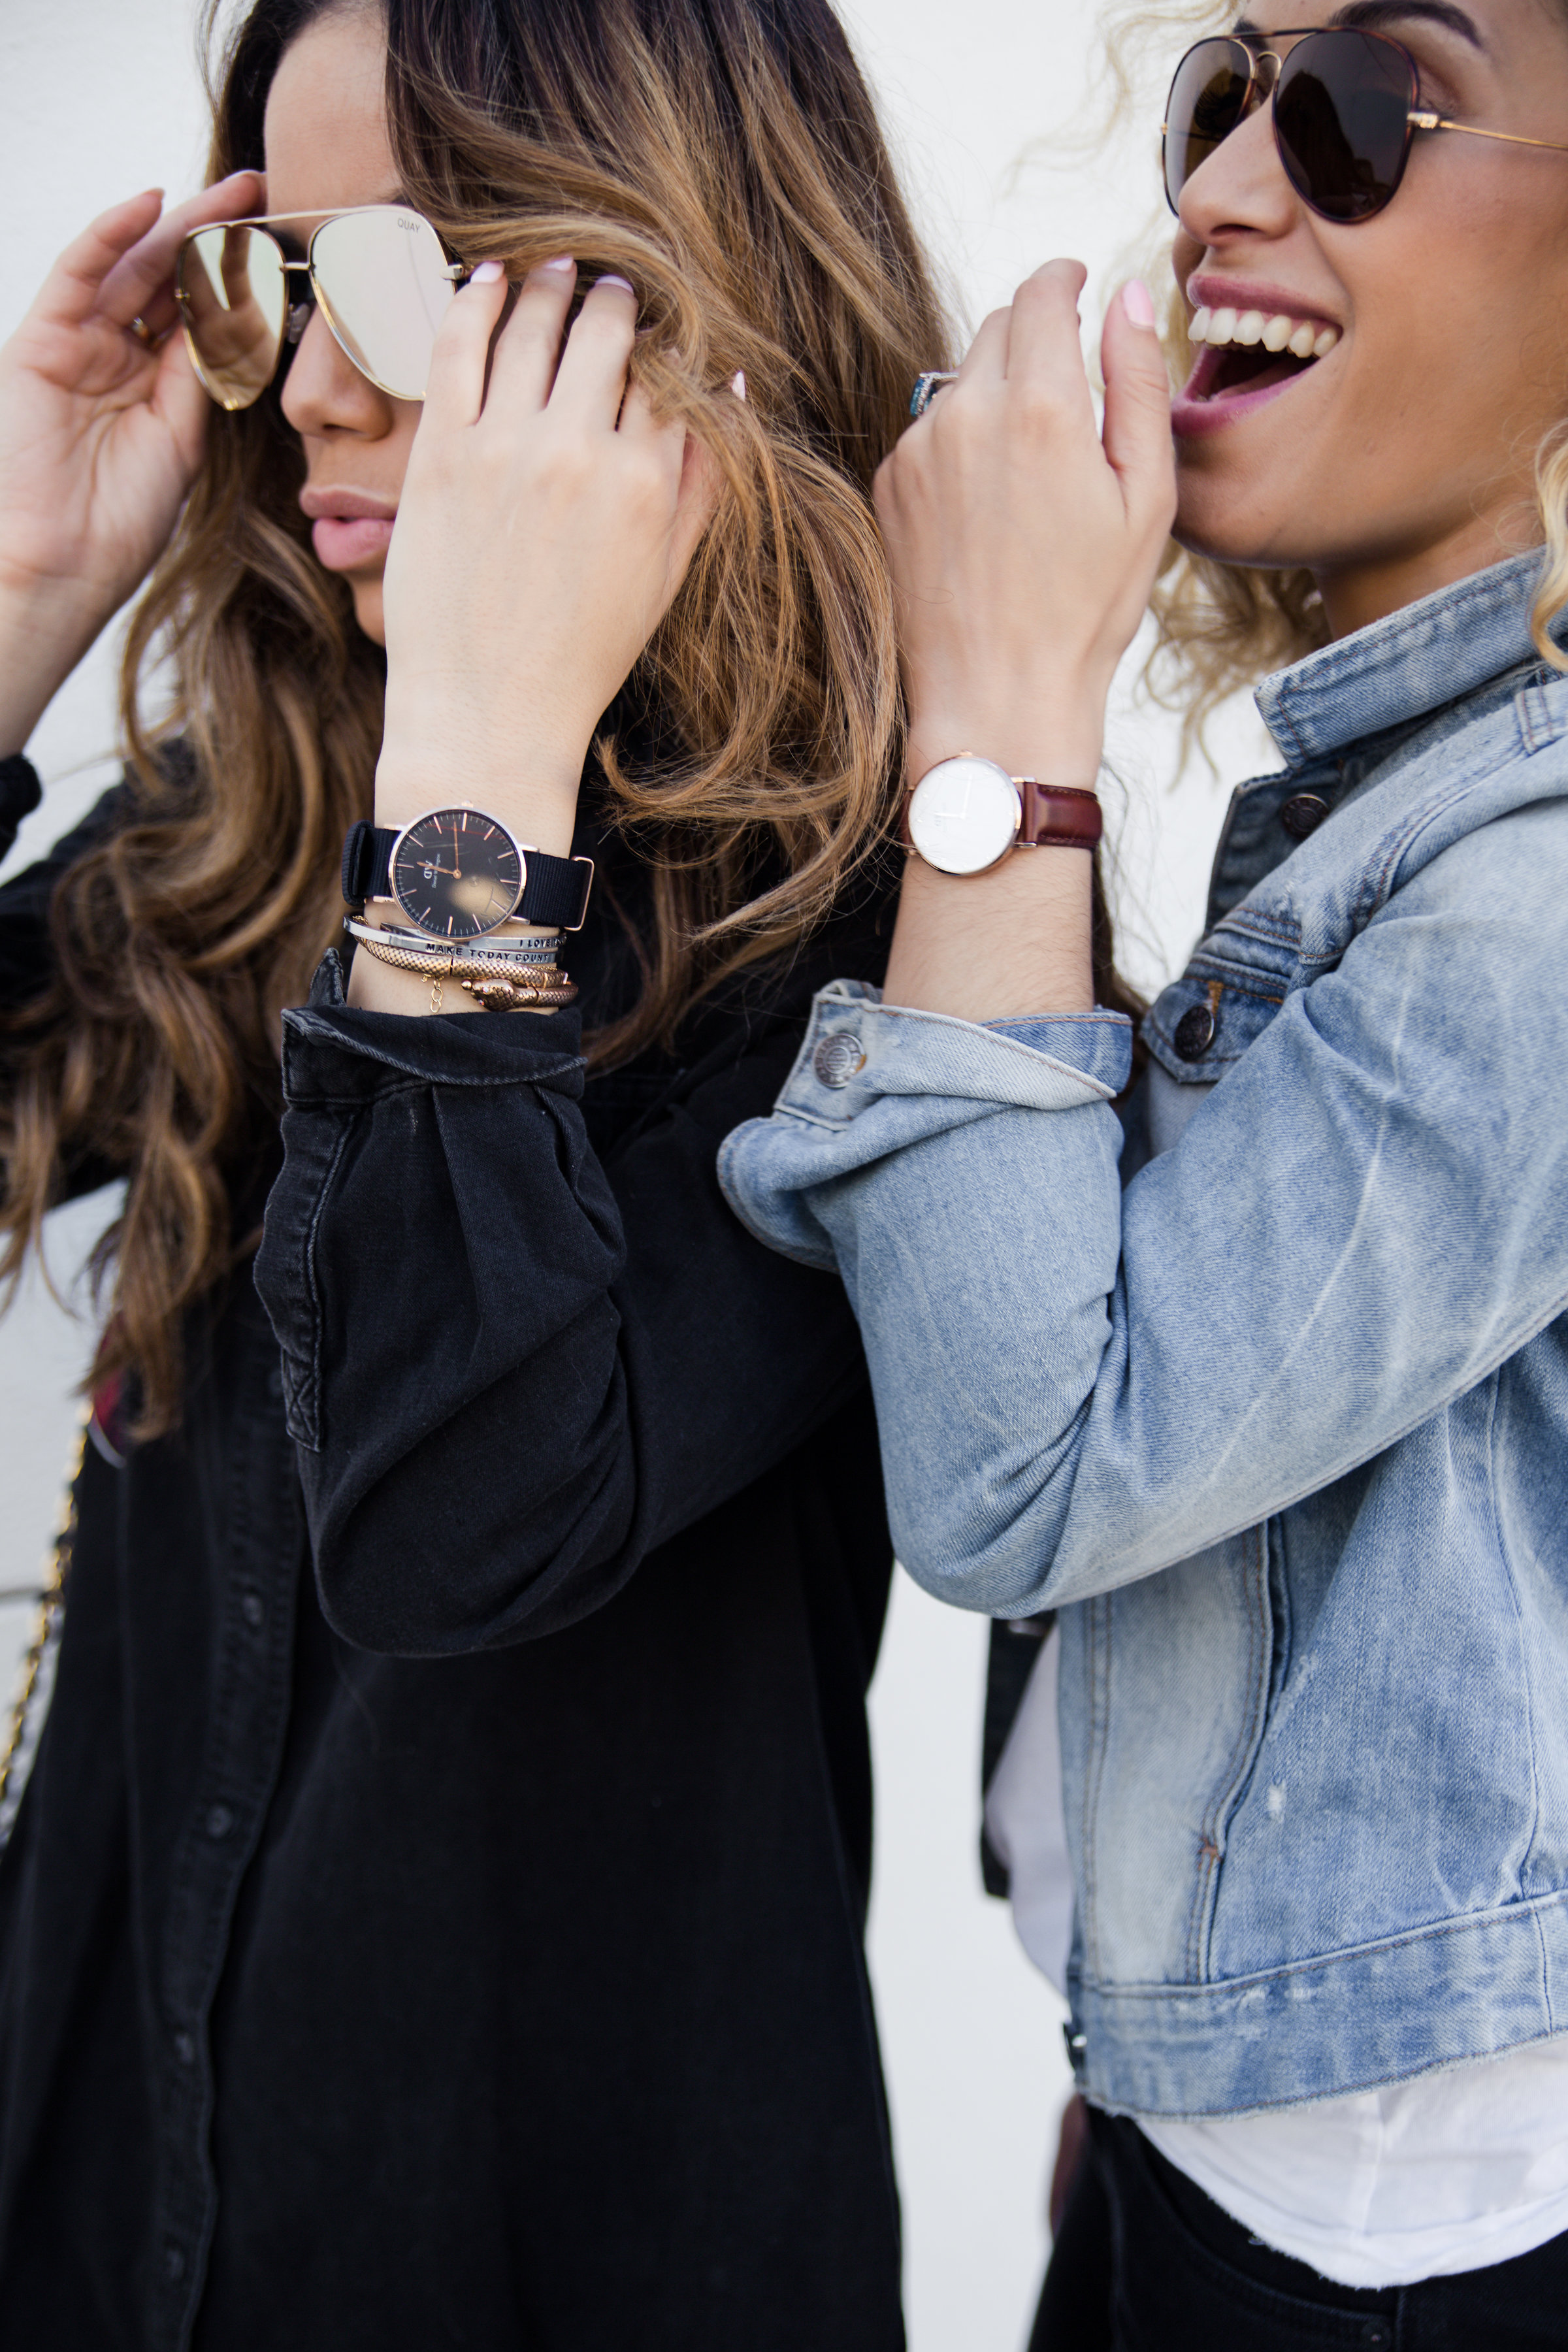 USE OUR CODE:BLUHAZL for 15% OFF your  Daniel Wellington  timepiece purchase